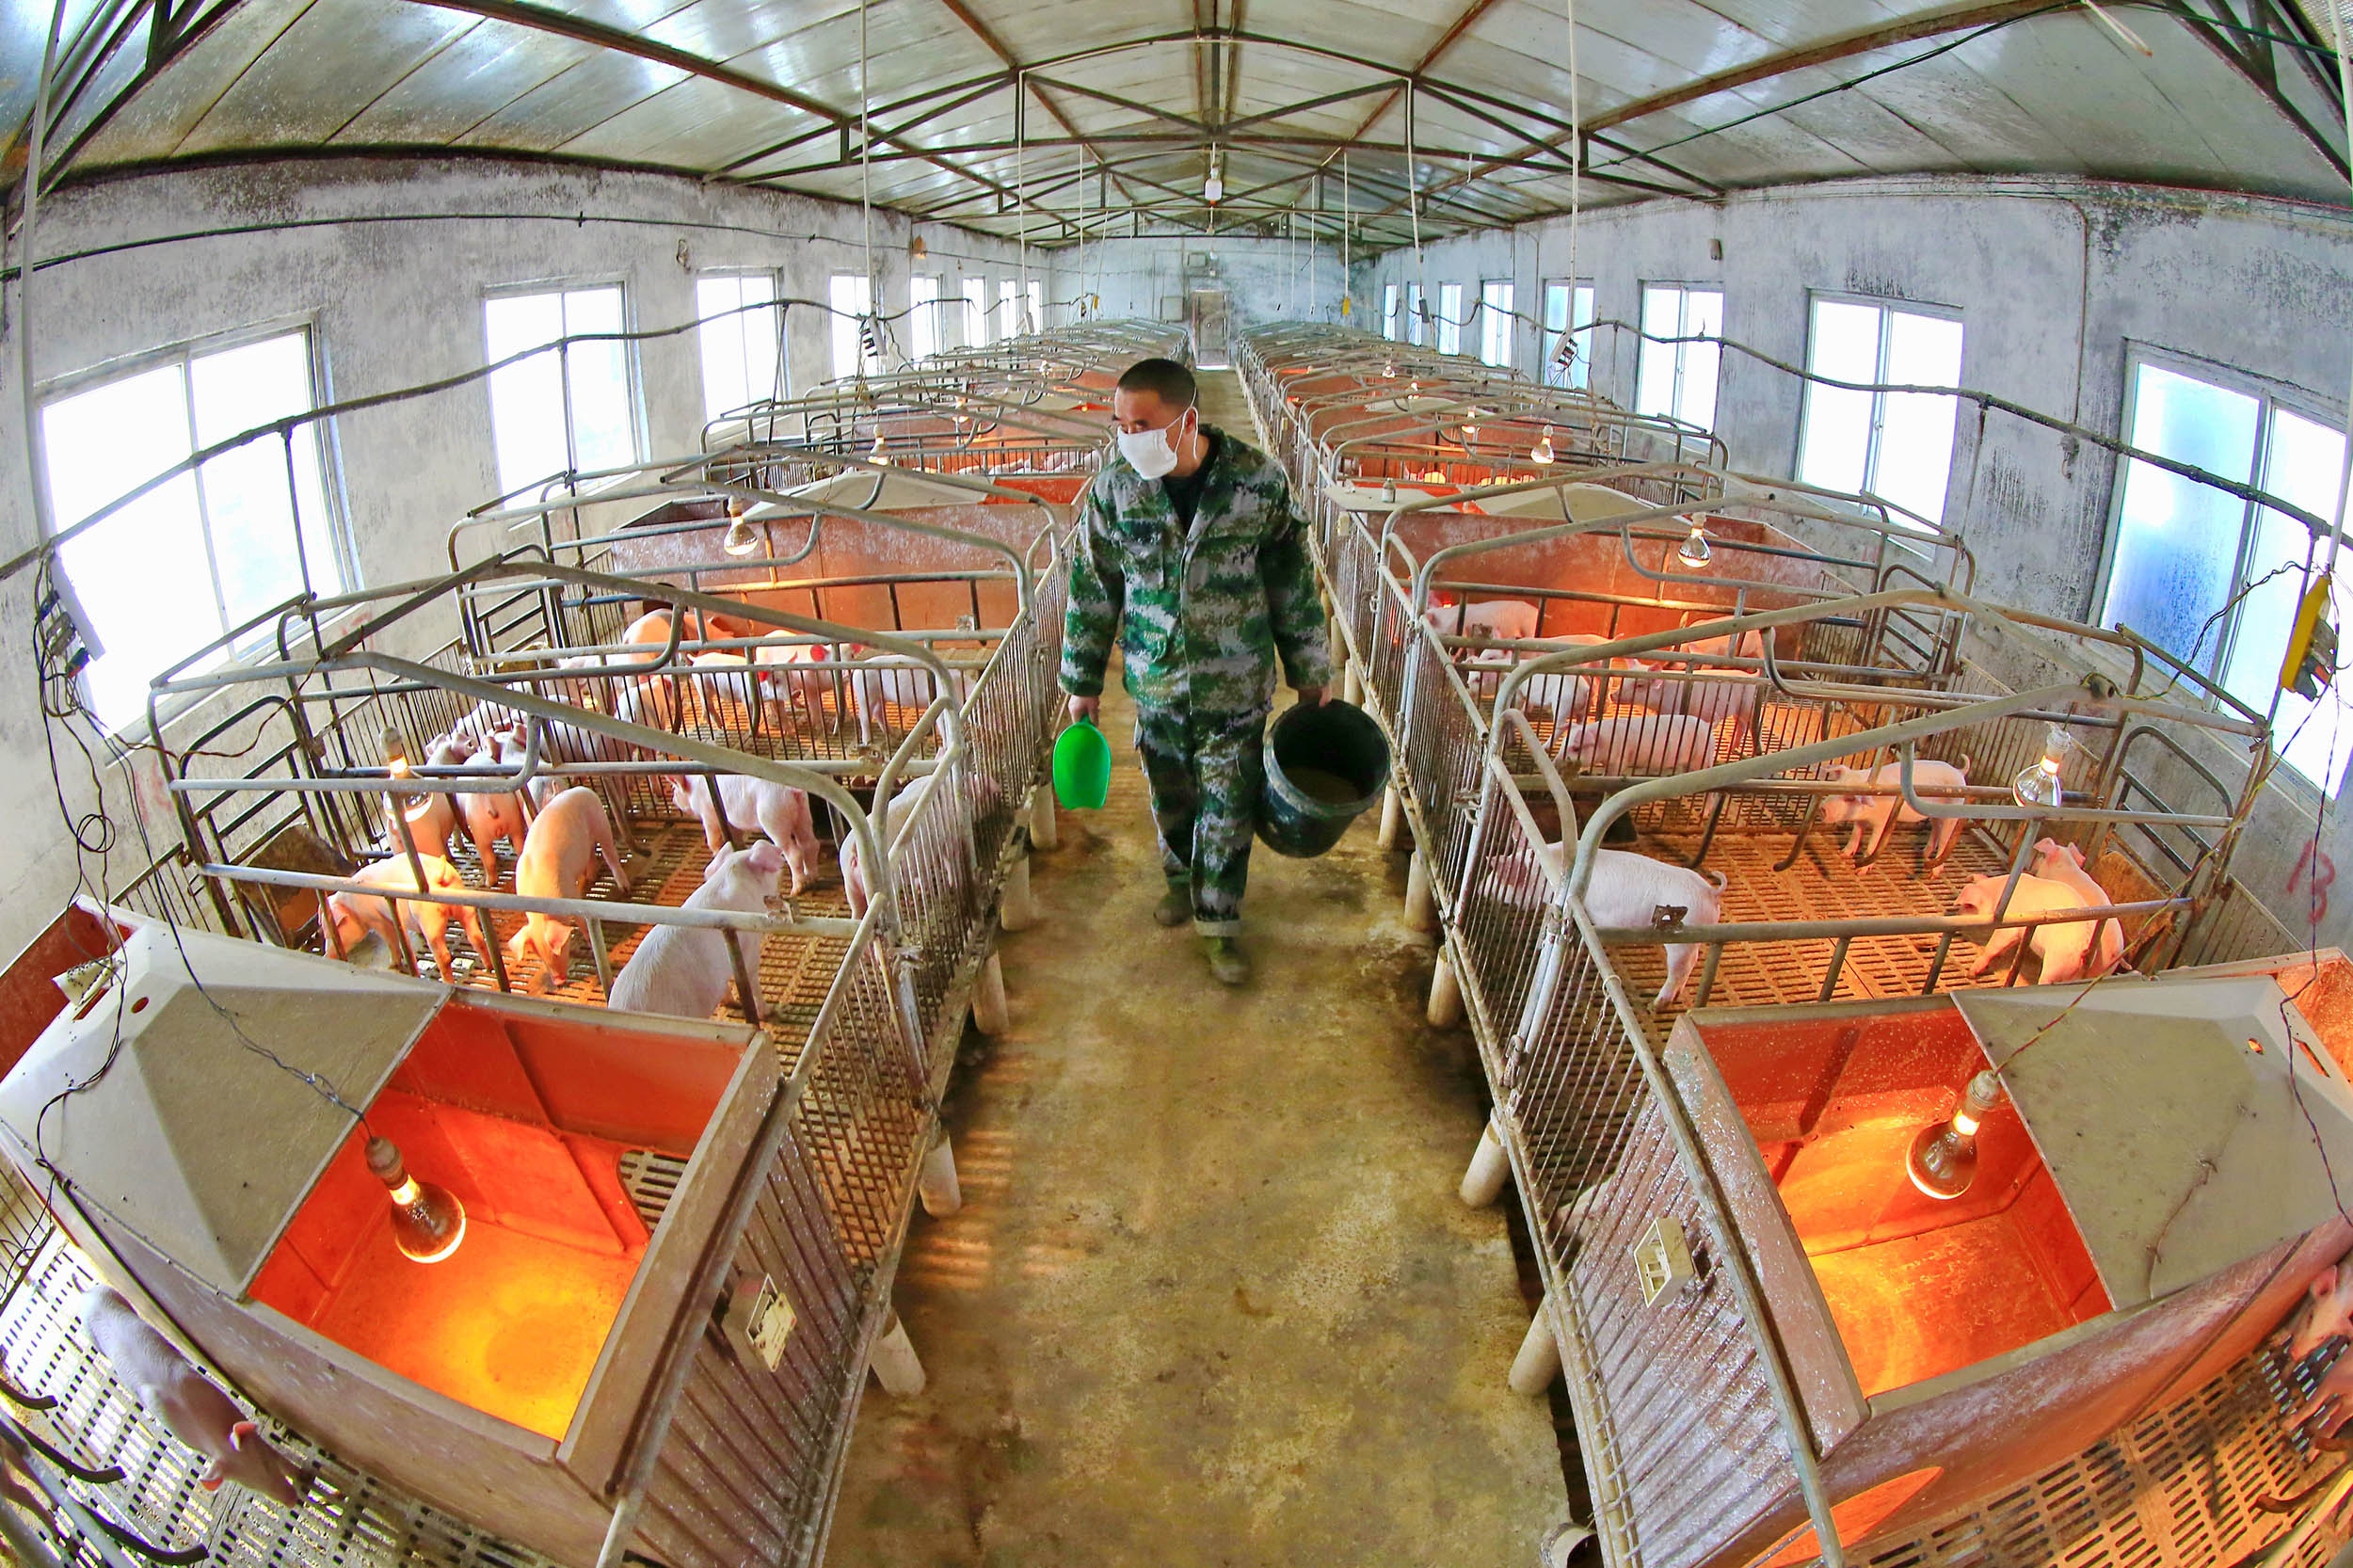 A worker feeds the piglets in a hog pen in southwest China's Sichuan province on February 21.